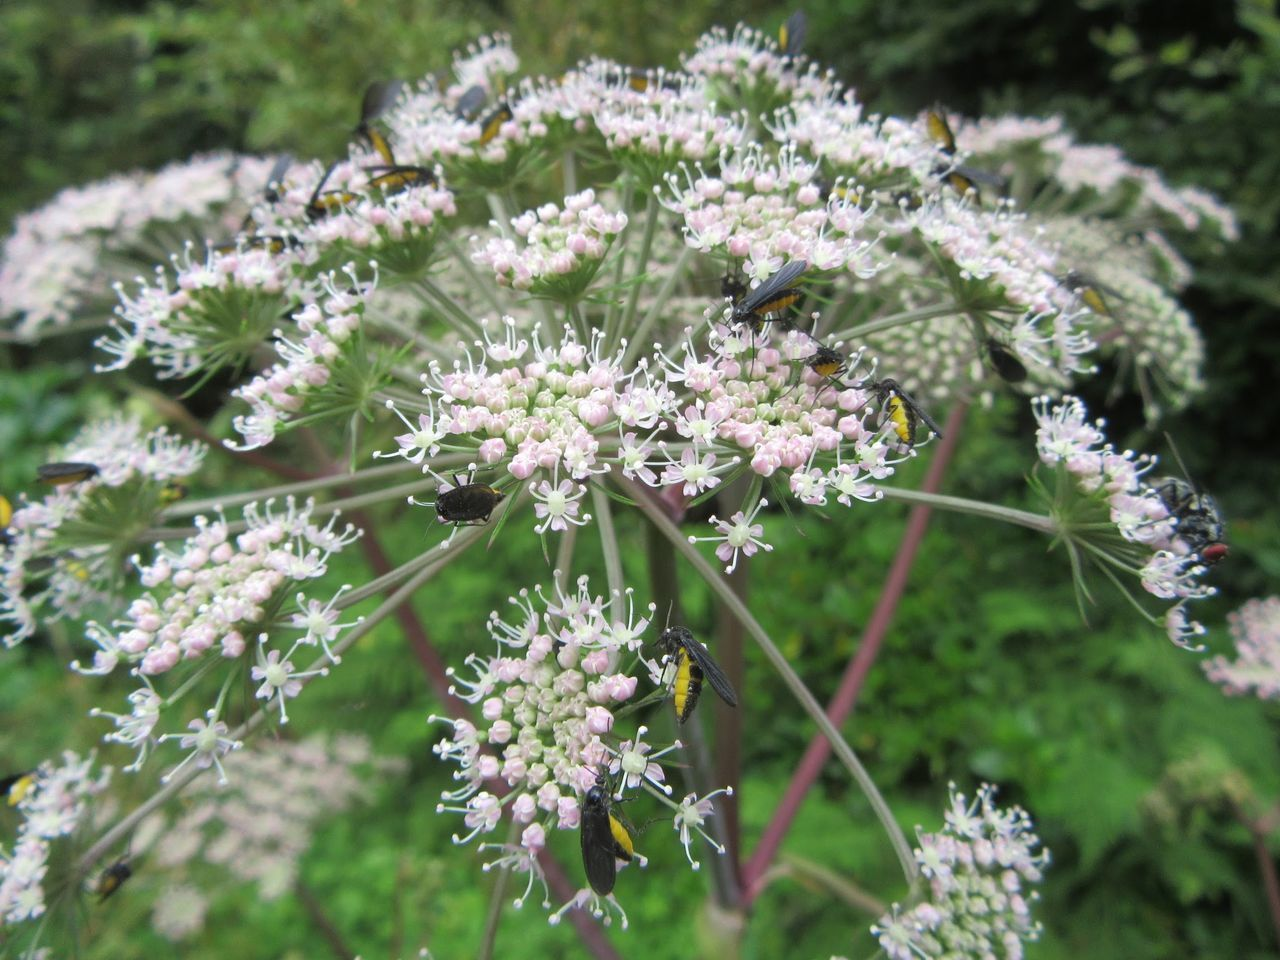 Hogweed/Heracleum sphondylium Flower Fragility Freshness Growth Beauty In Nature Nature Plant Close-up Focus On Foreground Selective Focus Springtime In Bloom Day Flower Head Botany Blossom Pink Color Petal Outdoors Blooming Insects And Flowers Hogweed Insects Feed Native Flora Ireland